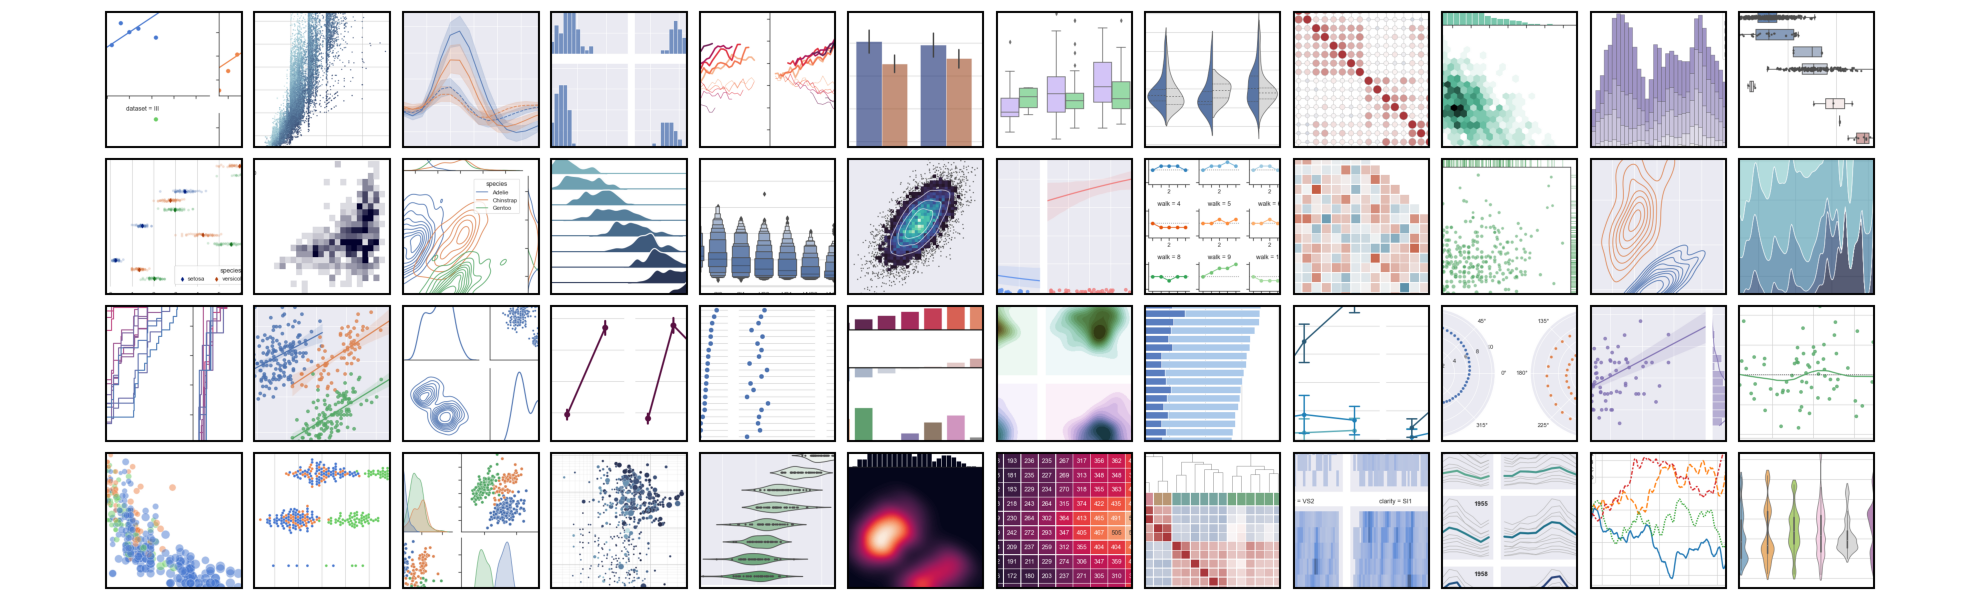 Some examples plots that seaborn can create, if everything goes well